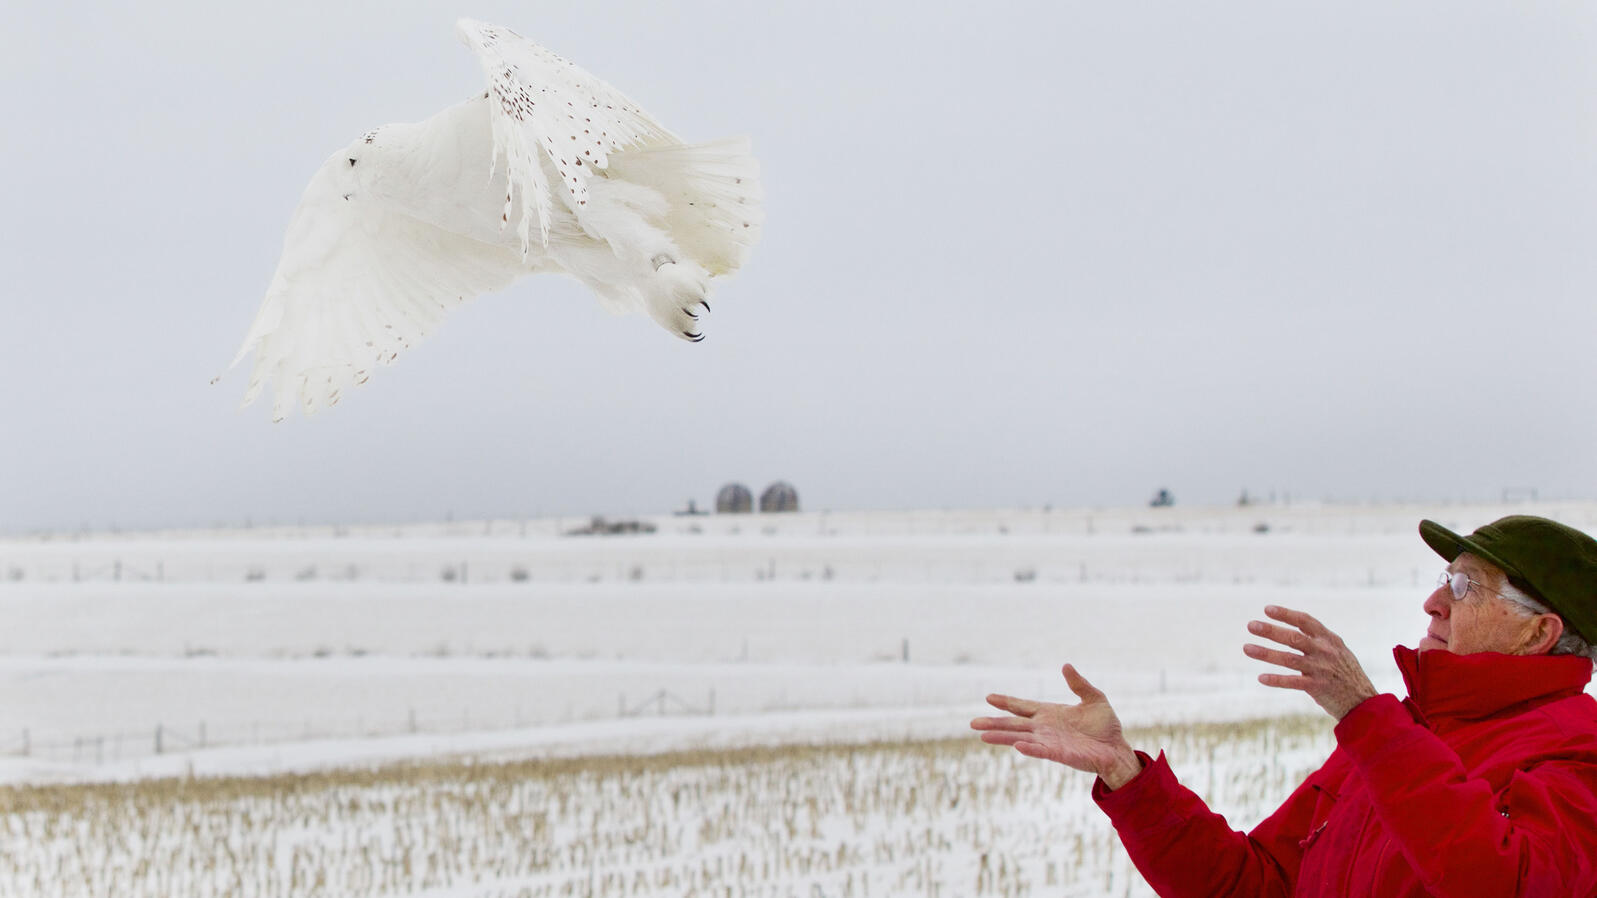 Mark Martin, long-time sanctuary manager at Madison Audubon's Goose Pond Sanctuary, releases Goose, a newly tagged Snowy Owl. Arlene Koziol.